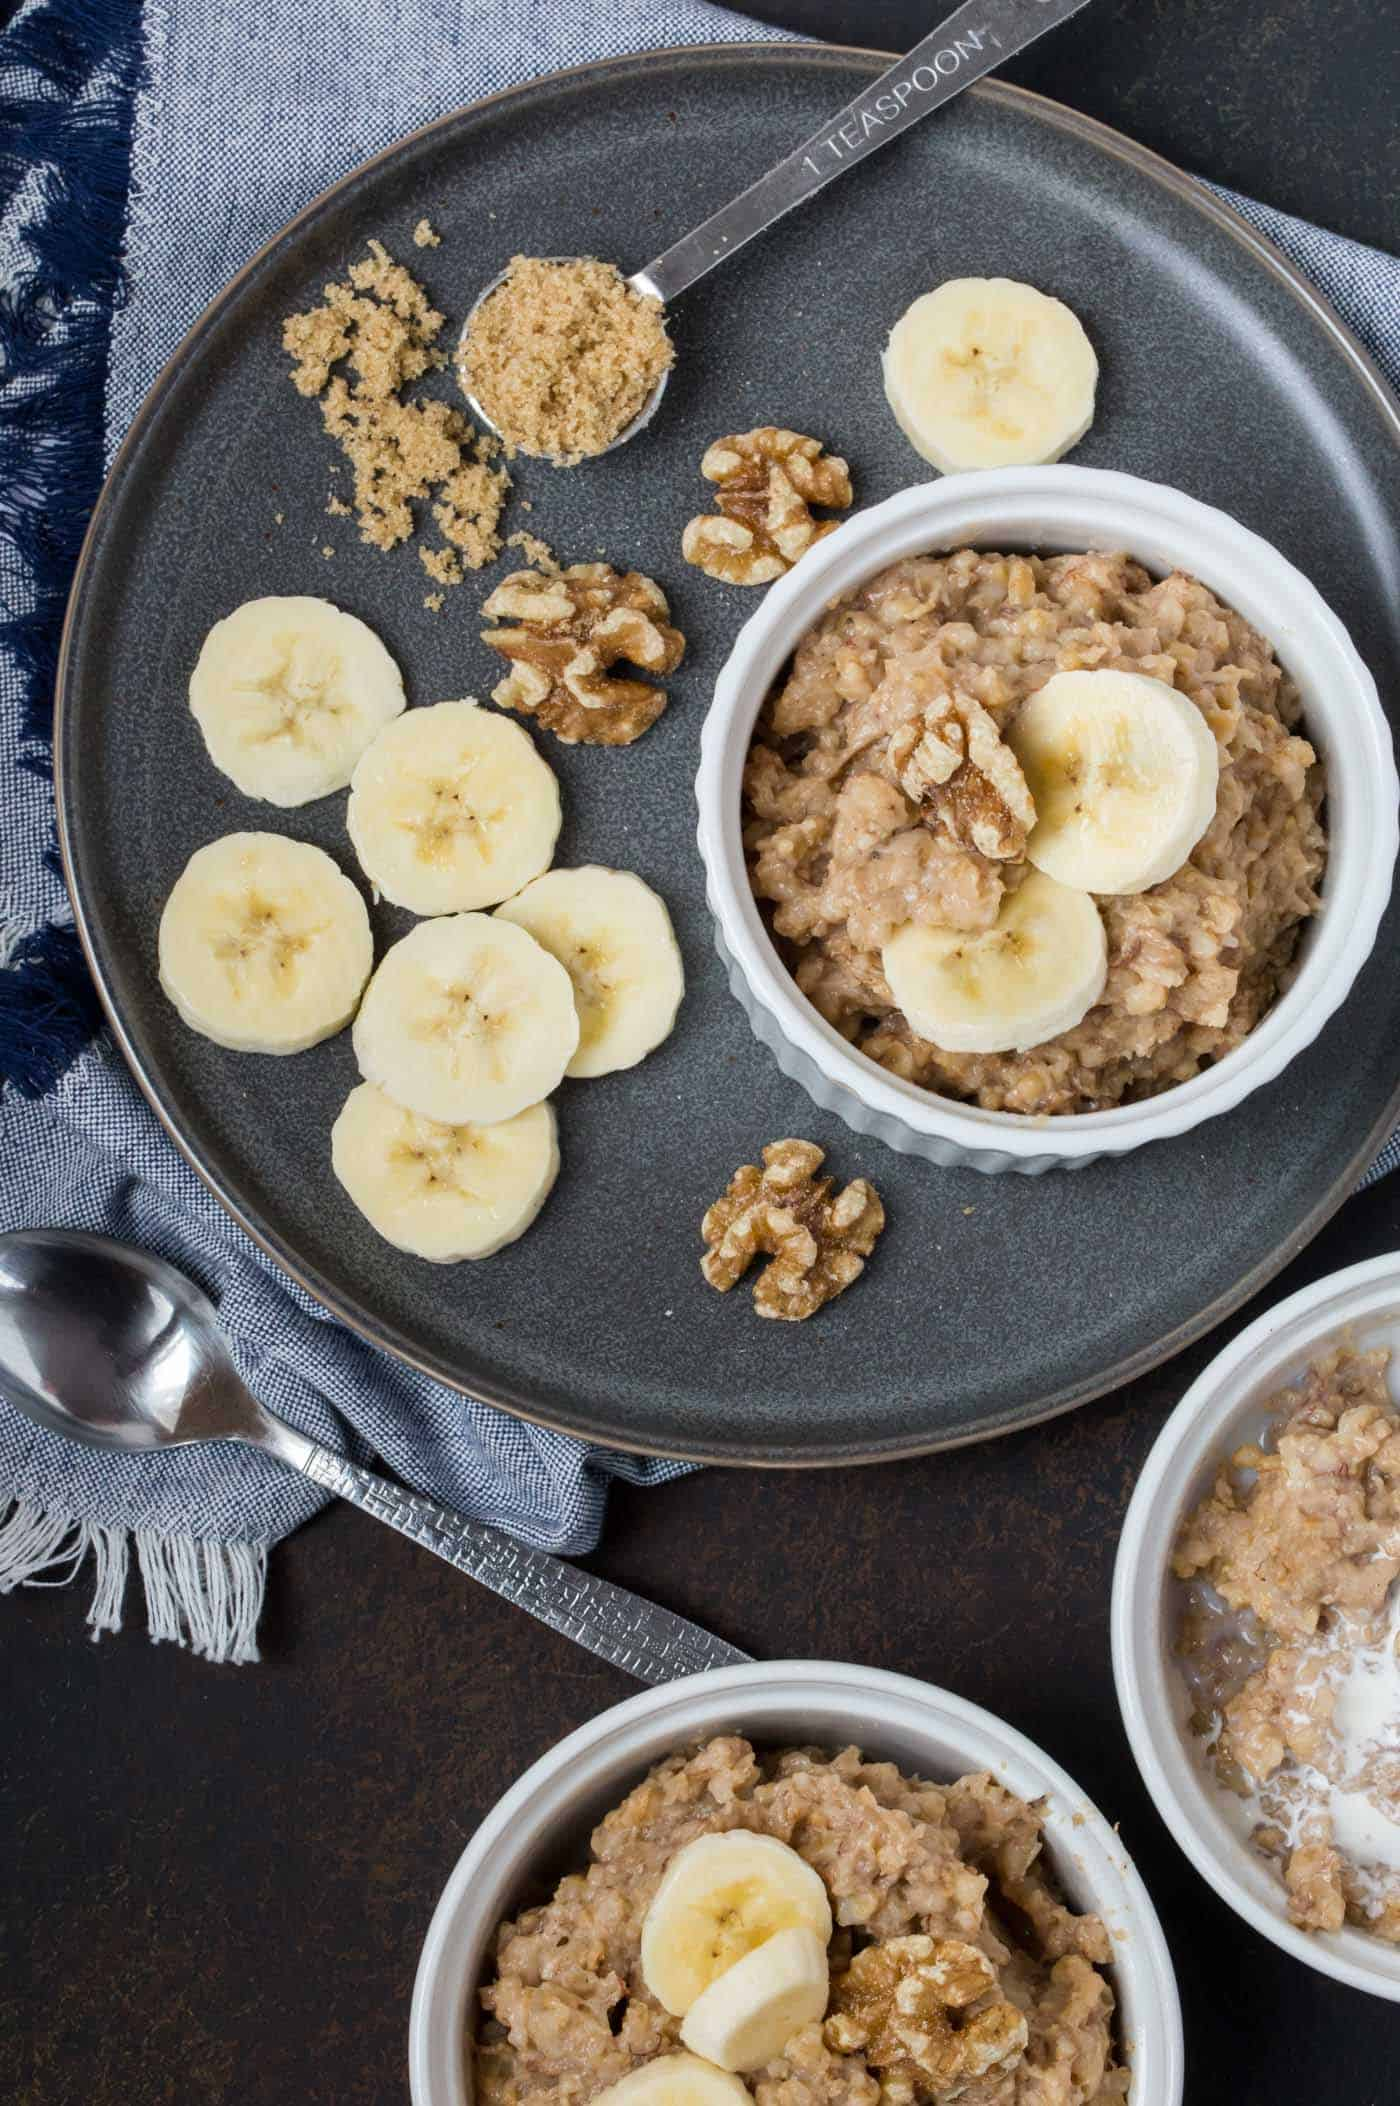 Three white ramekins filled with Slow Cooker Steel Cut Oatmeal with Bananas. Garnished with brown sugar, fresh banana slices and walnuts.